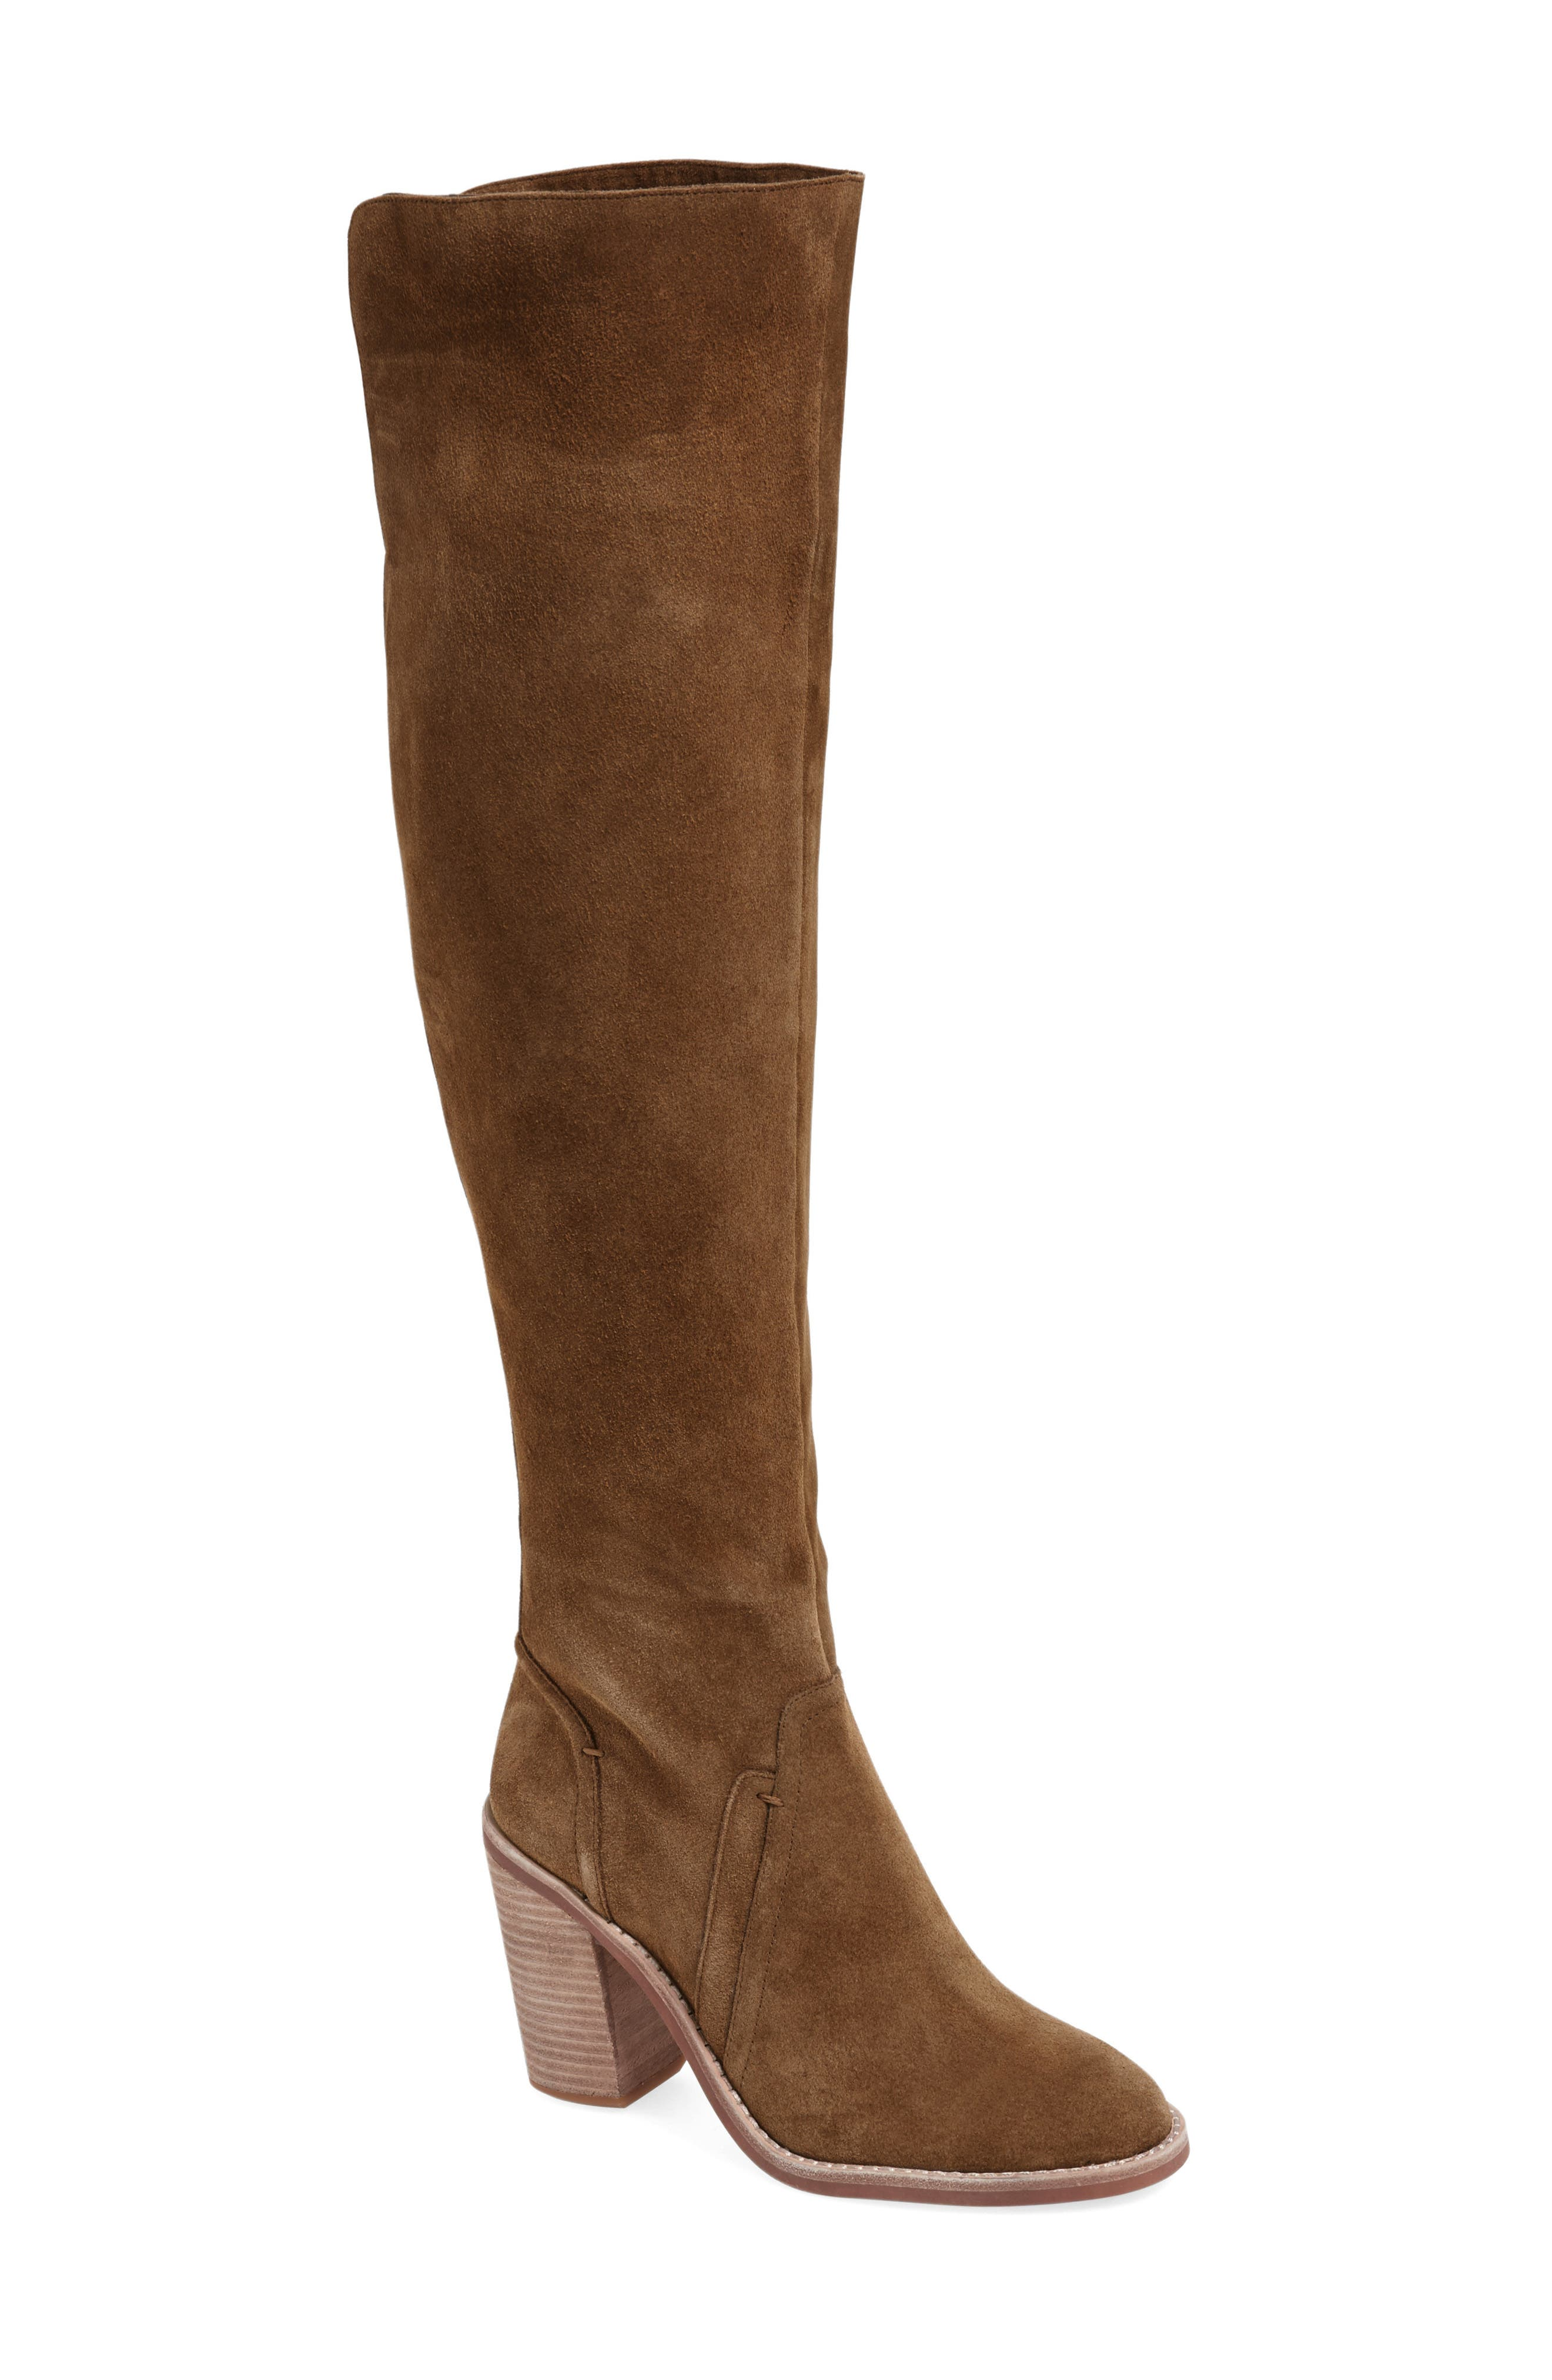 Main Image - Vince Camuto 'Melaya' Over the Knee Boot (Women) (Nordstrom Exclusive)